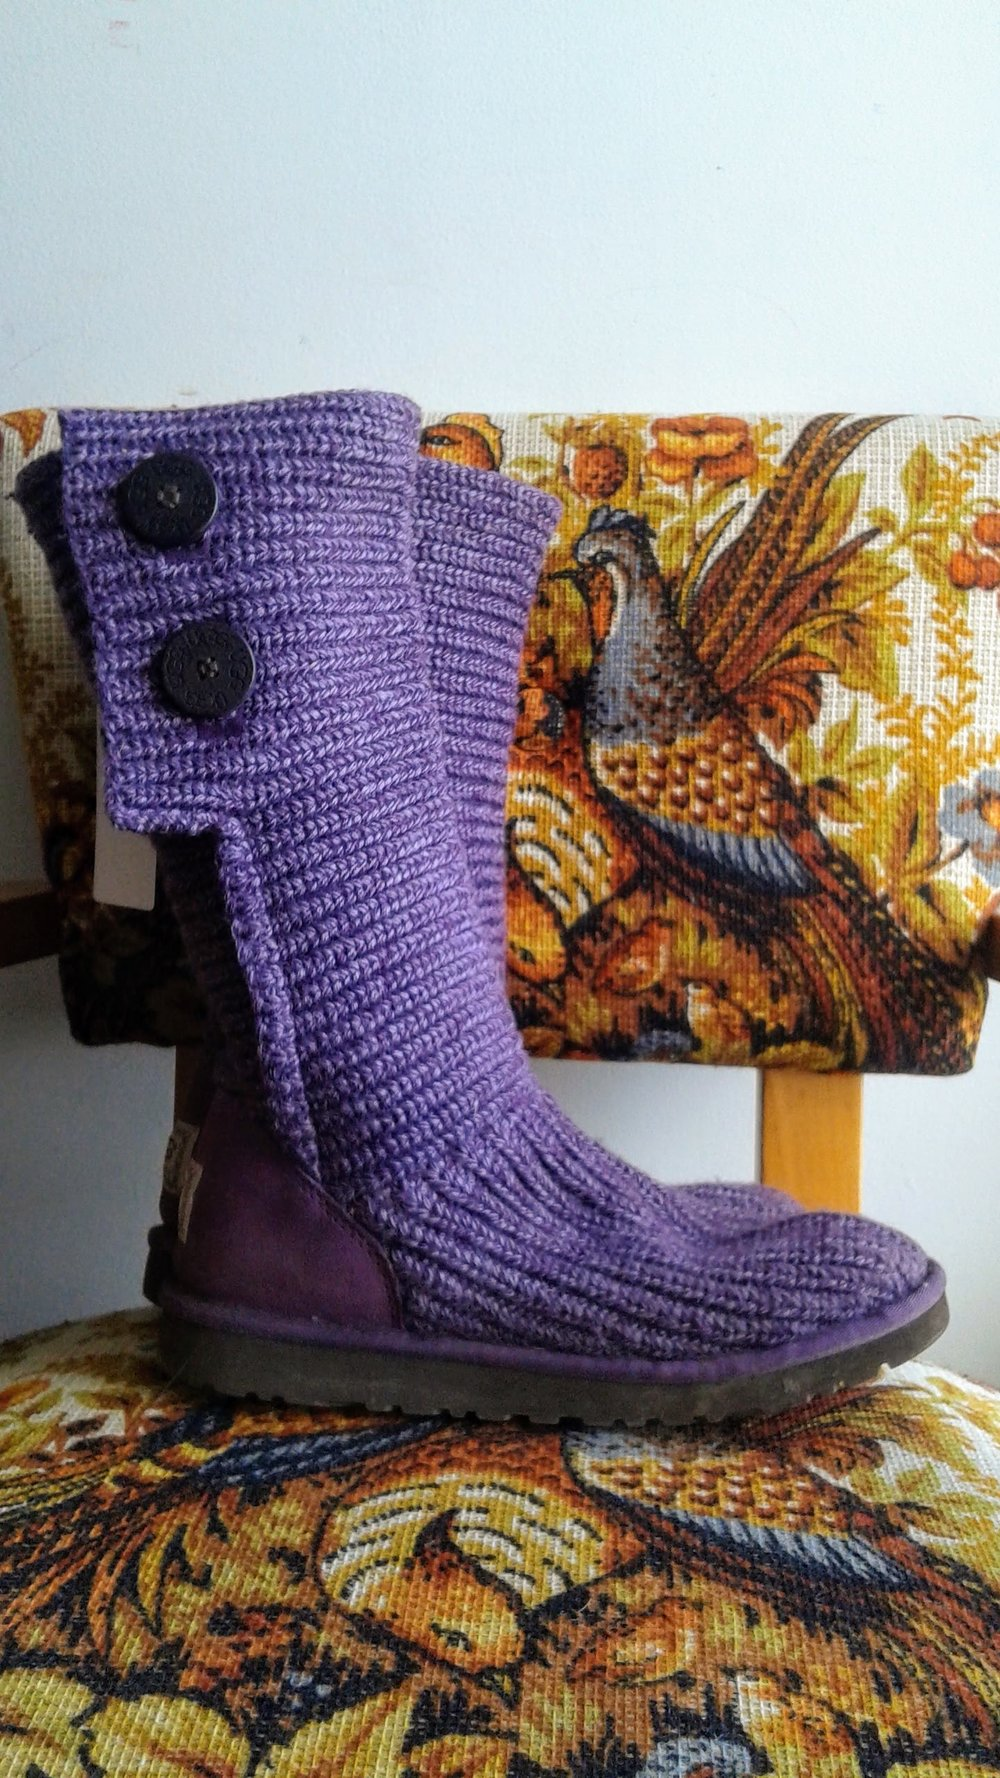 Ugg boots; S7, $45